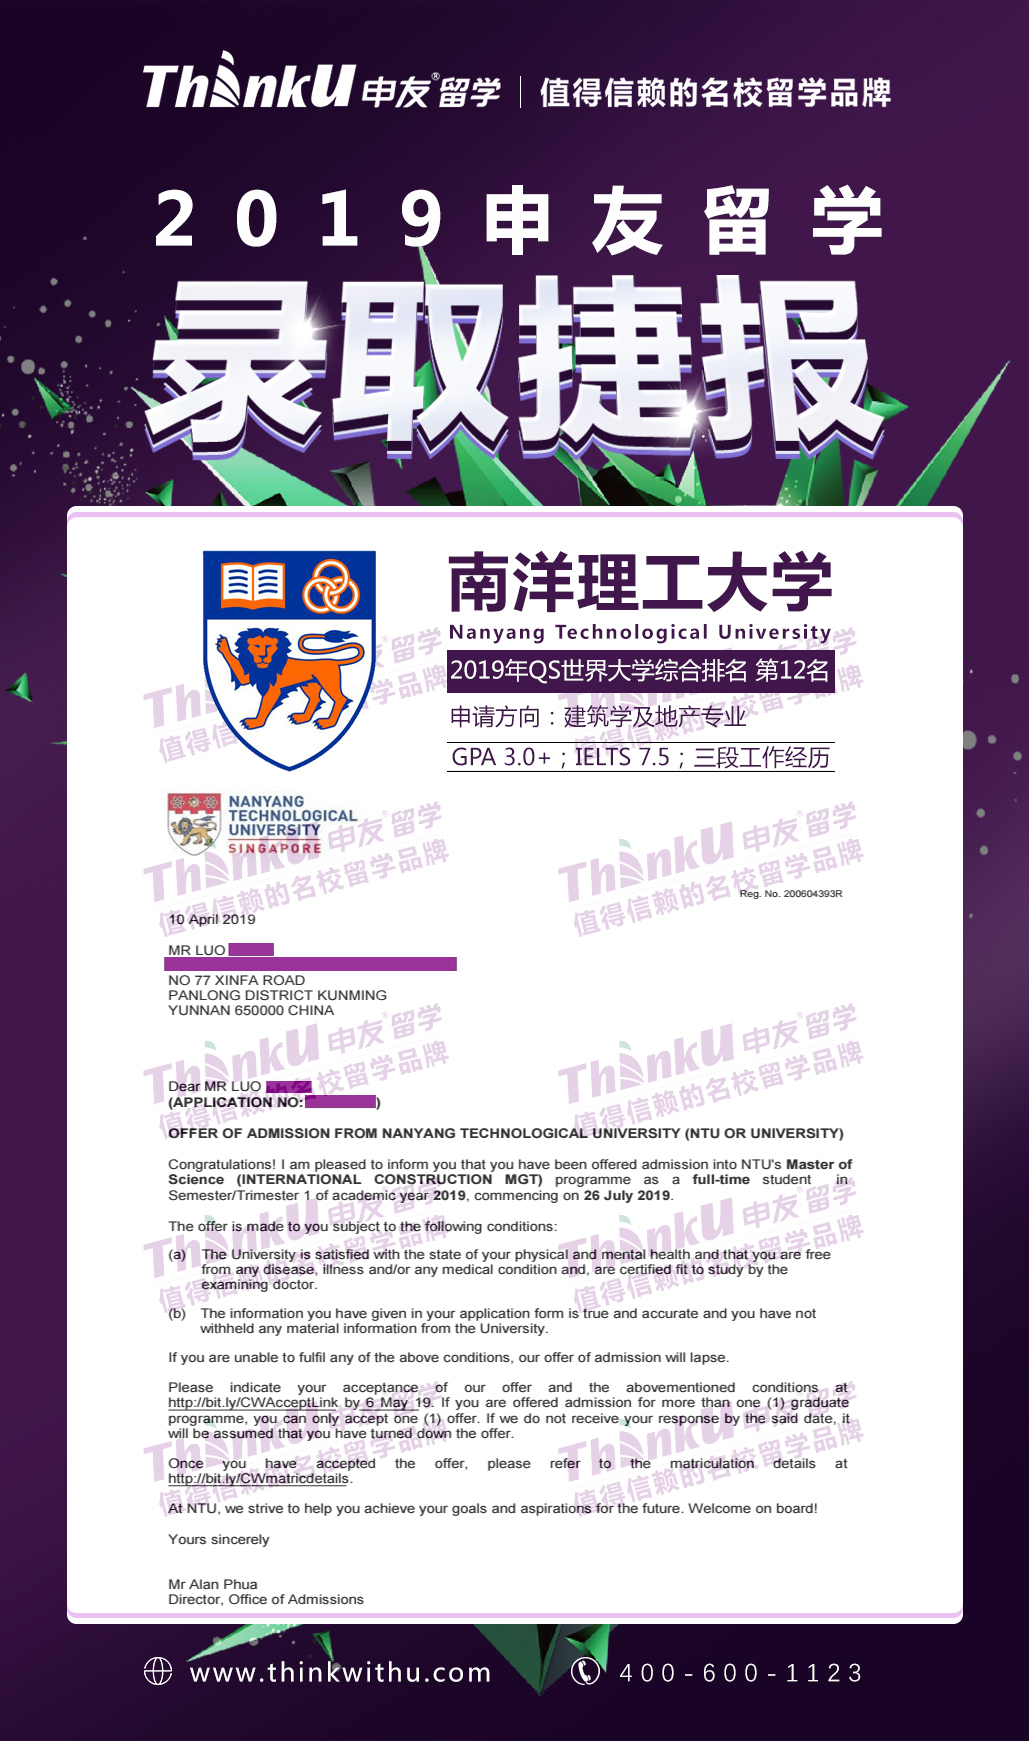 重庆大学-罗同学-南洋理工大学Master of Science International Construction Management offer.jpg